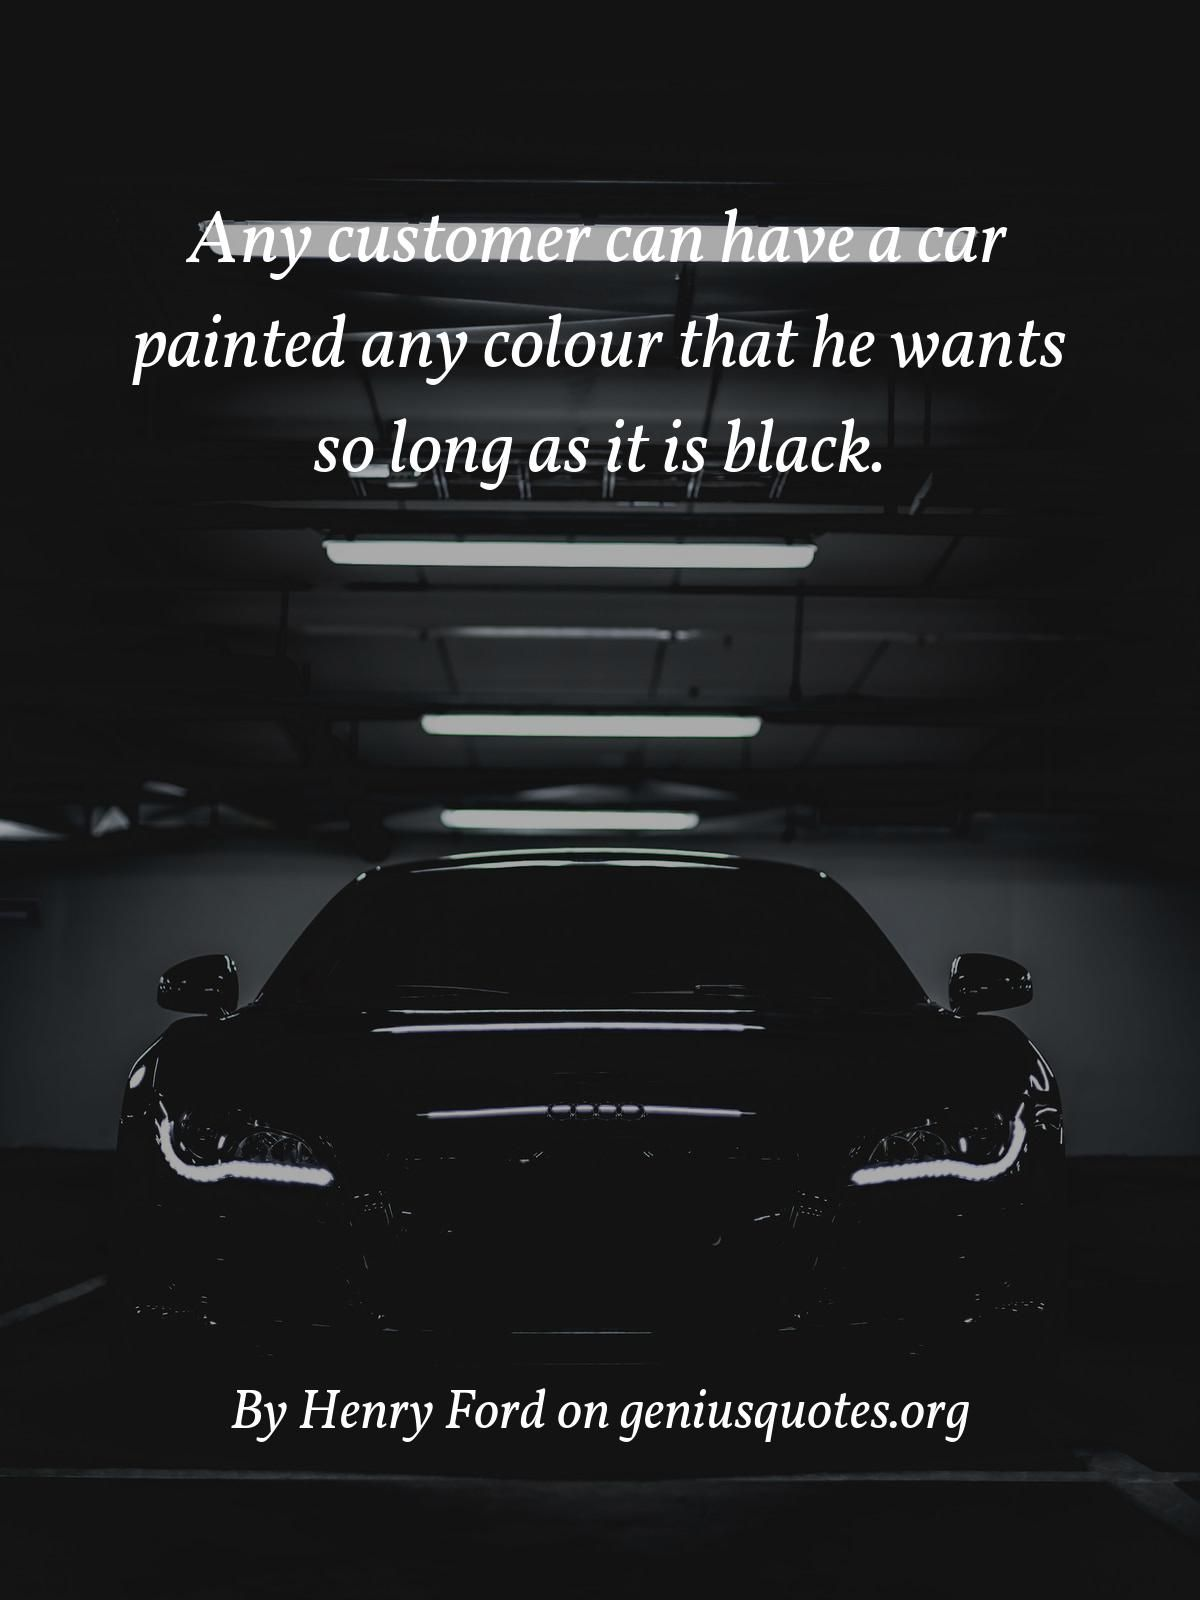 Any Customer Can Have A Car Painted Any Colour That He Wants So Long As It Is Black Experience Quotes Henry Ford Quotes Environmental Quotes